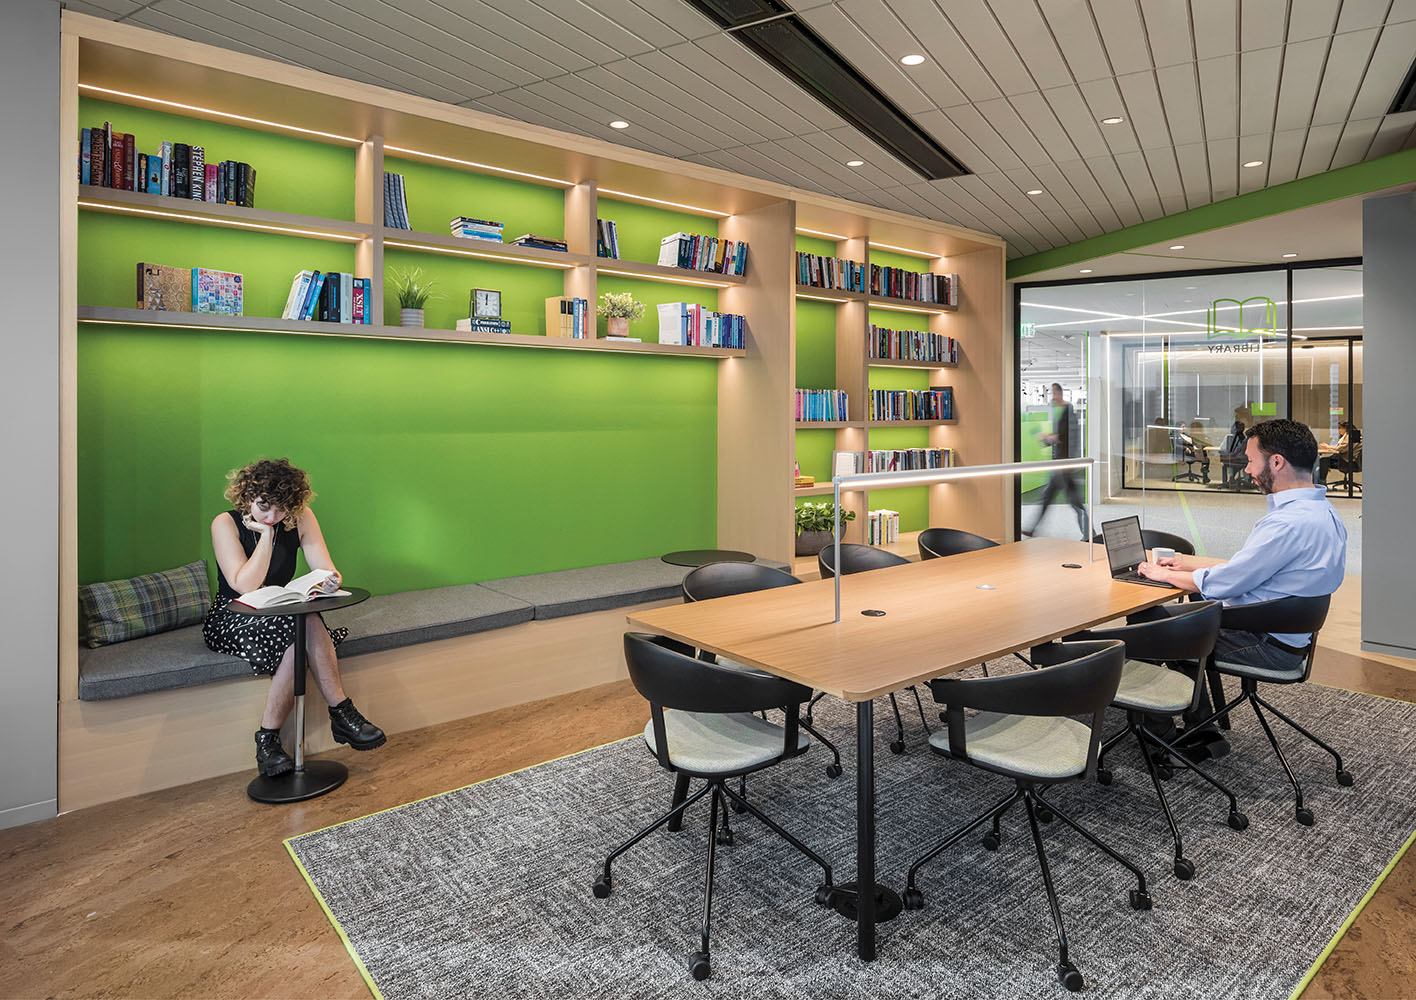 Quiet, isolated libraries offer a respite for those looking to escape the open office for more intense concentration Anton Grassl